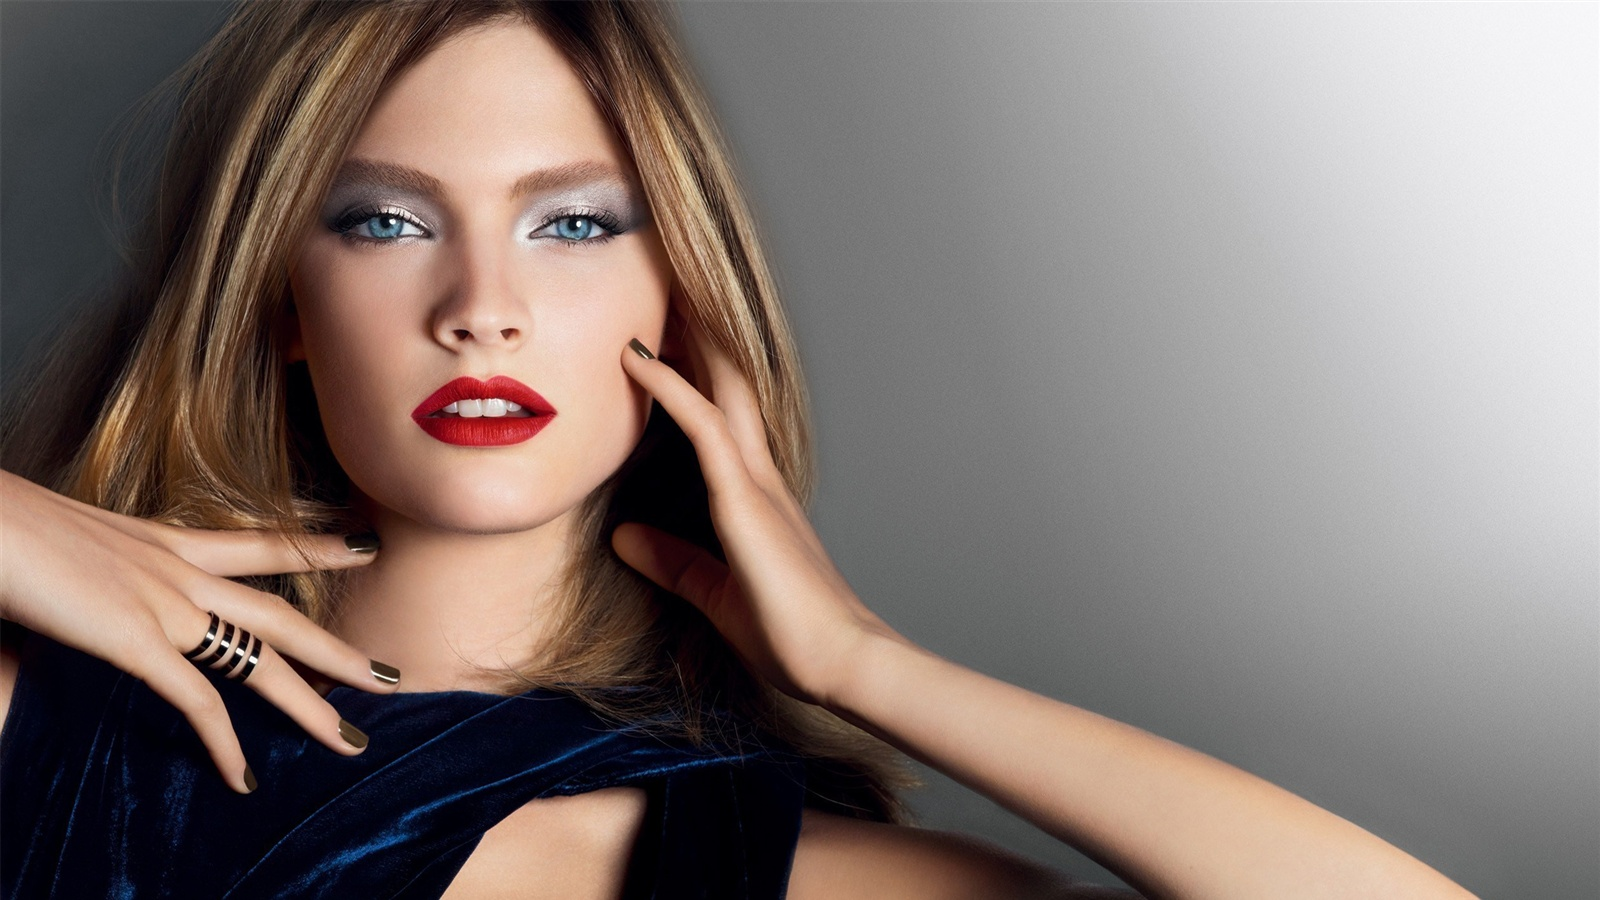 Fashion style make-up girl wallpaper - 1600x900